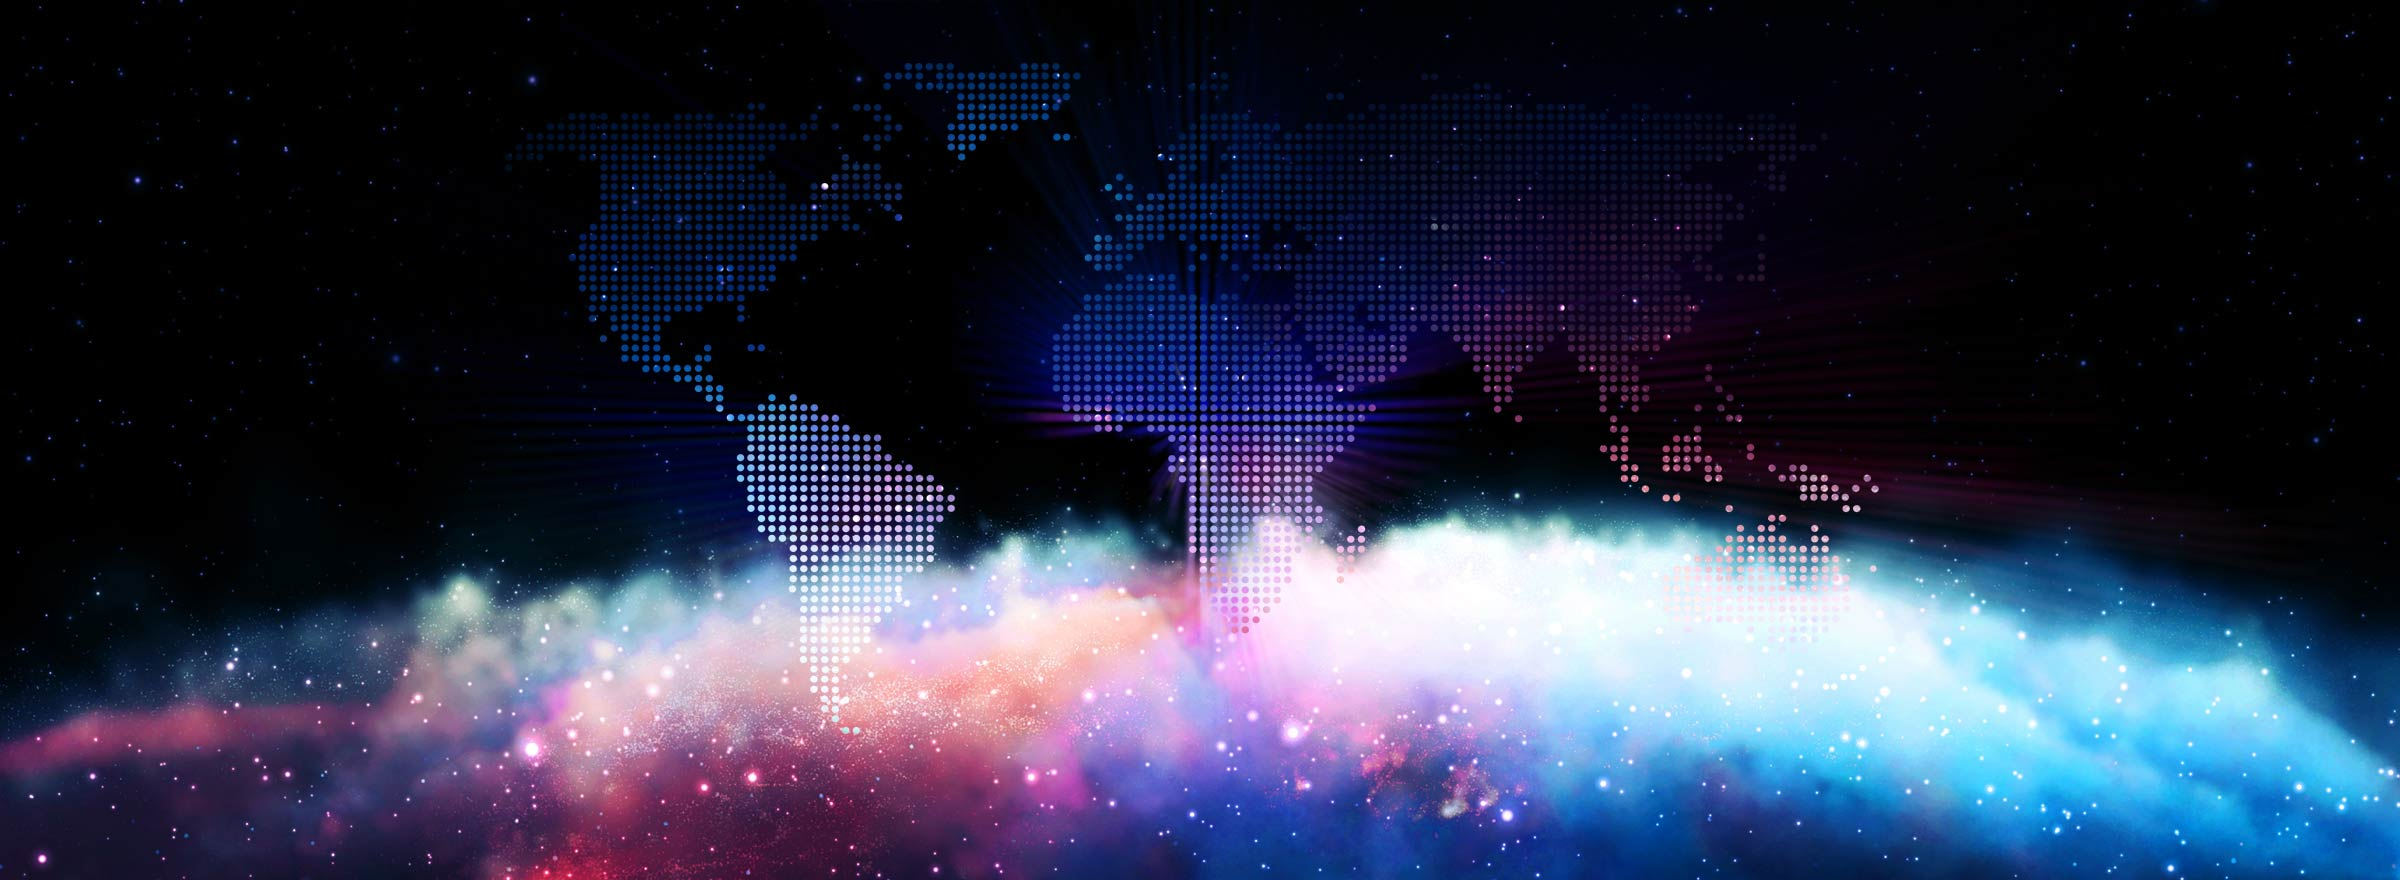 a nebula in front of a digital map of the world